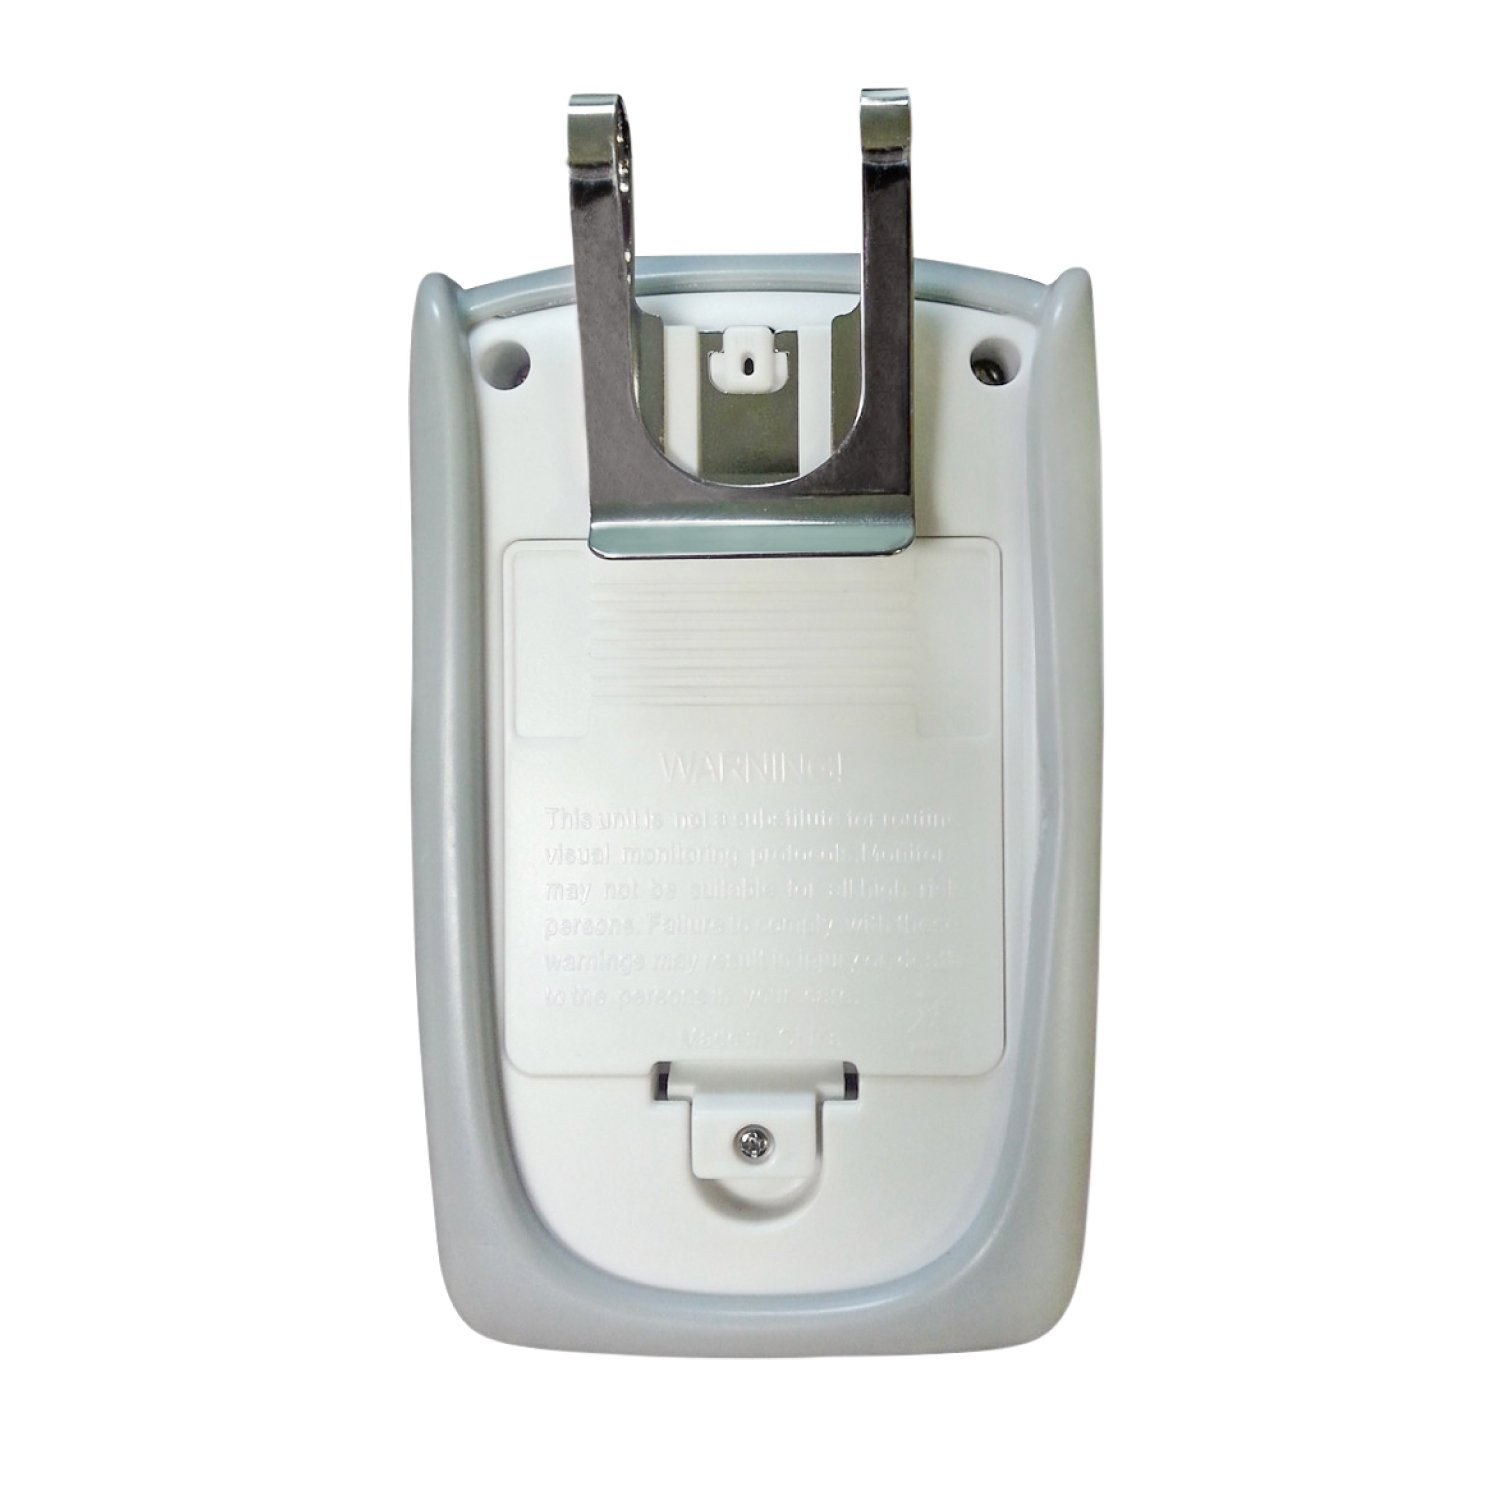 Chair Alarm System by Vive - Medical Fall Prevention Alert System for  Wheelchair, Dementia Patients,